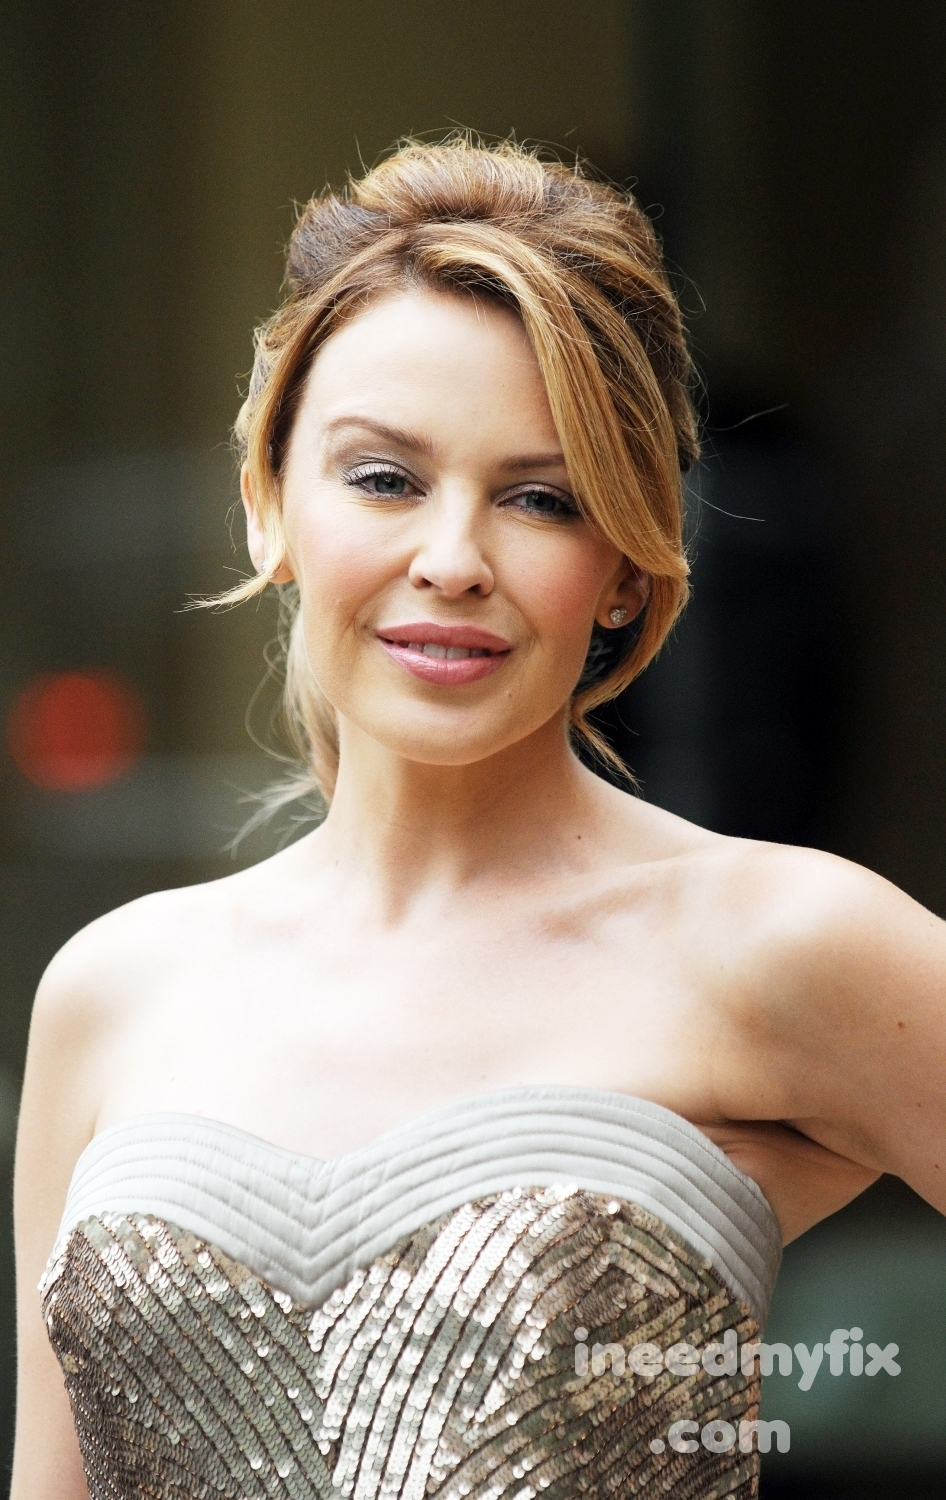 kylie minogue - photo #26